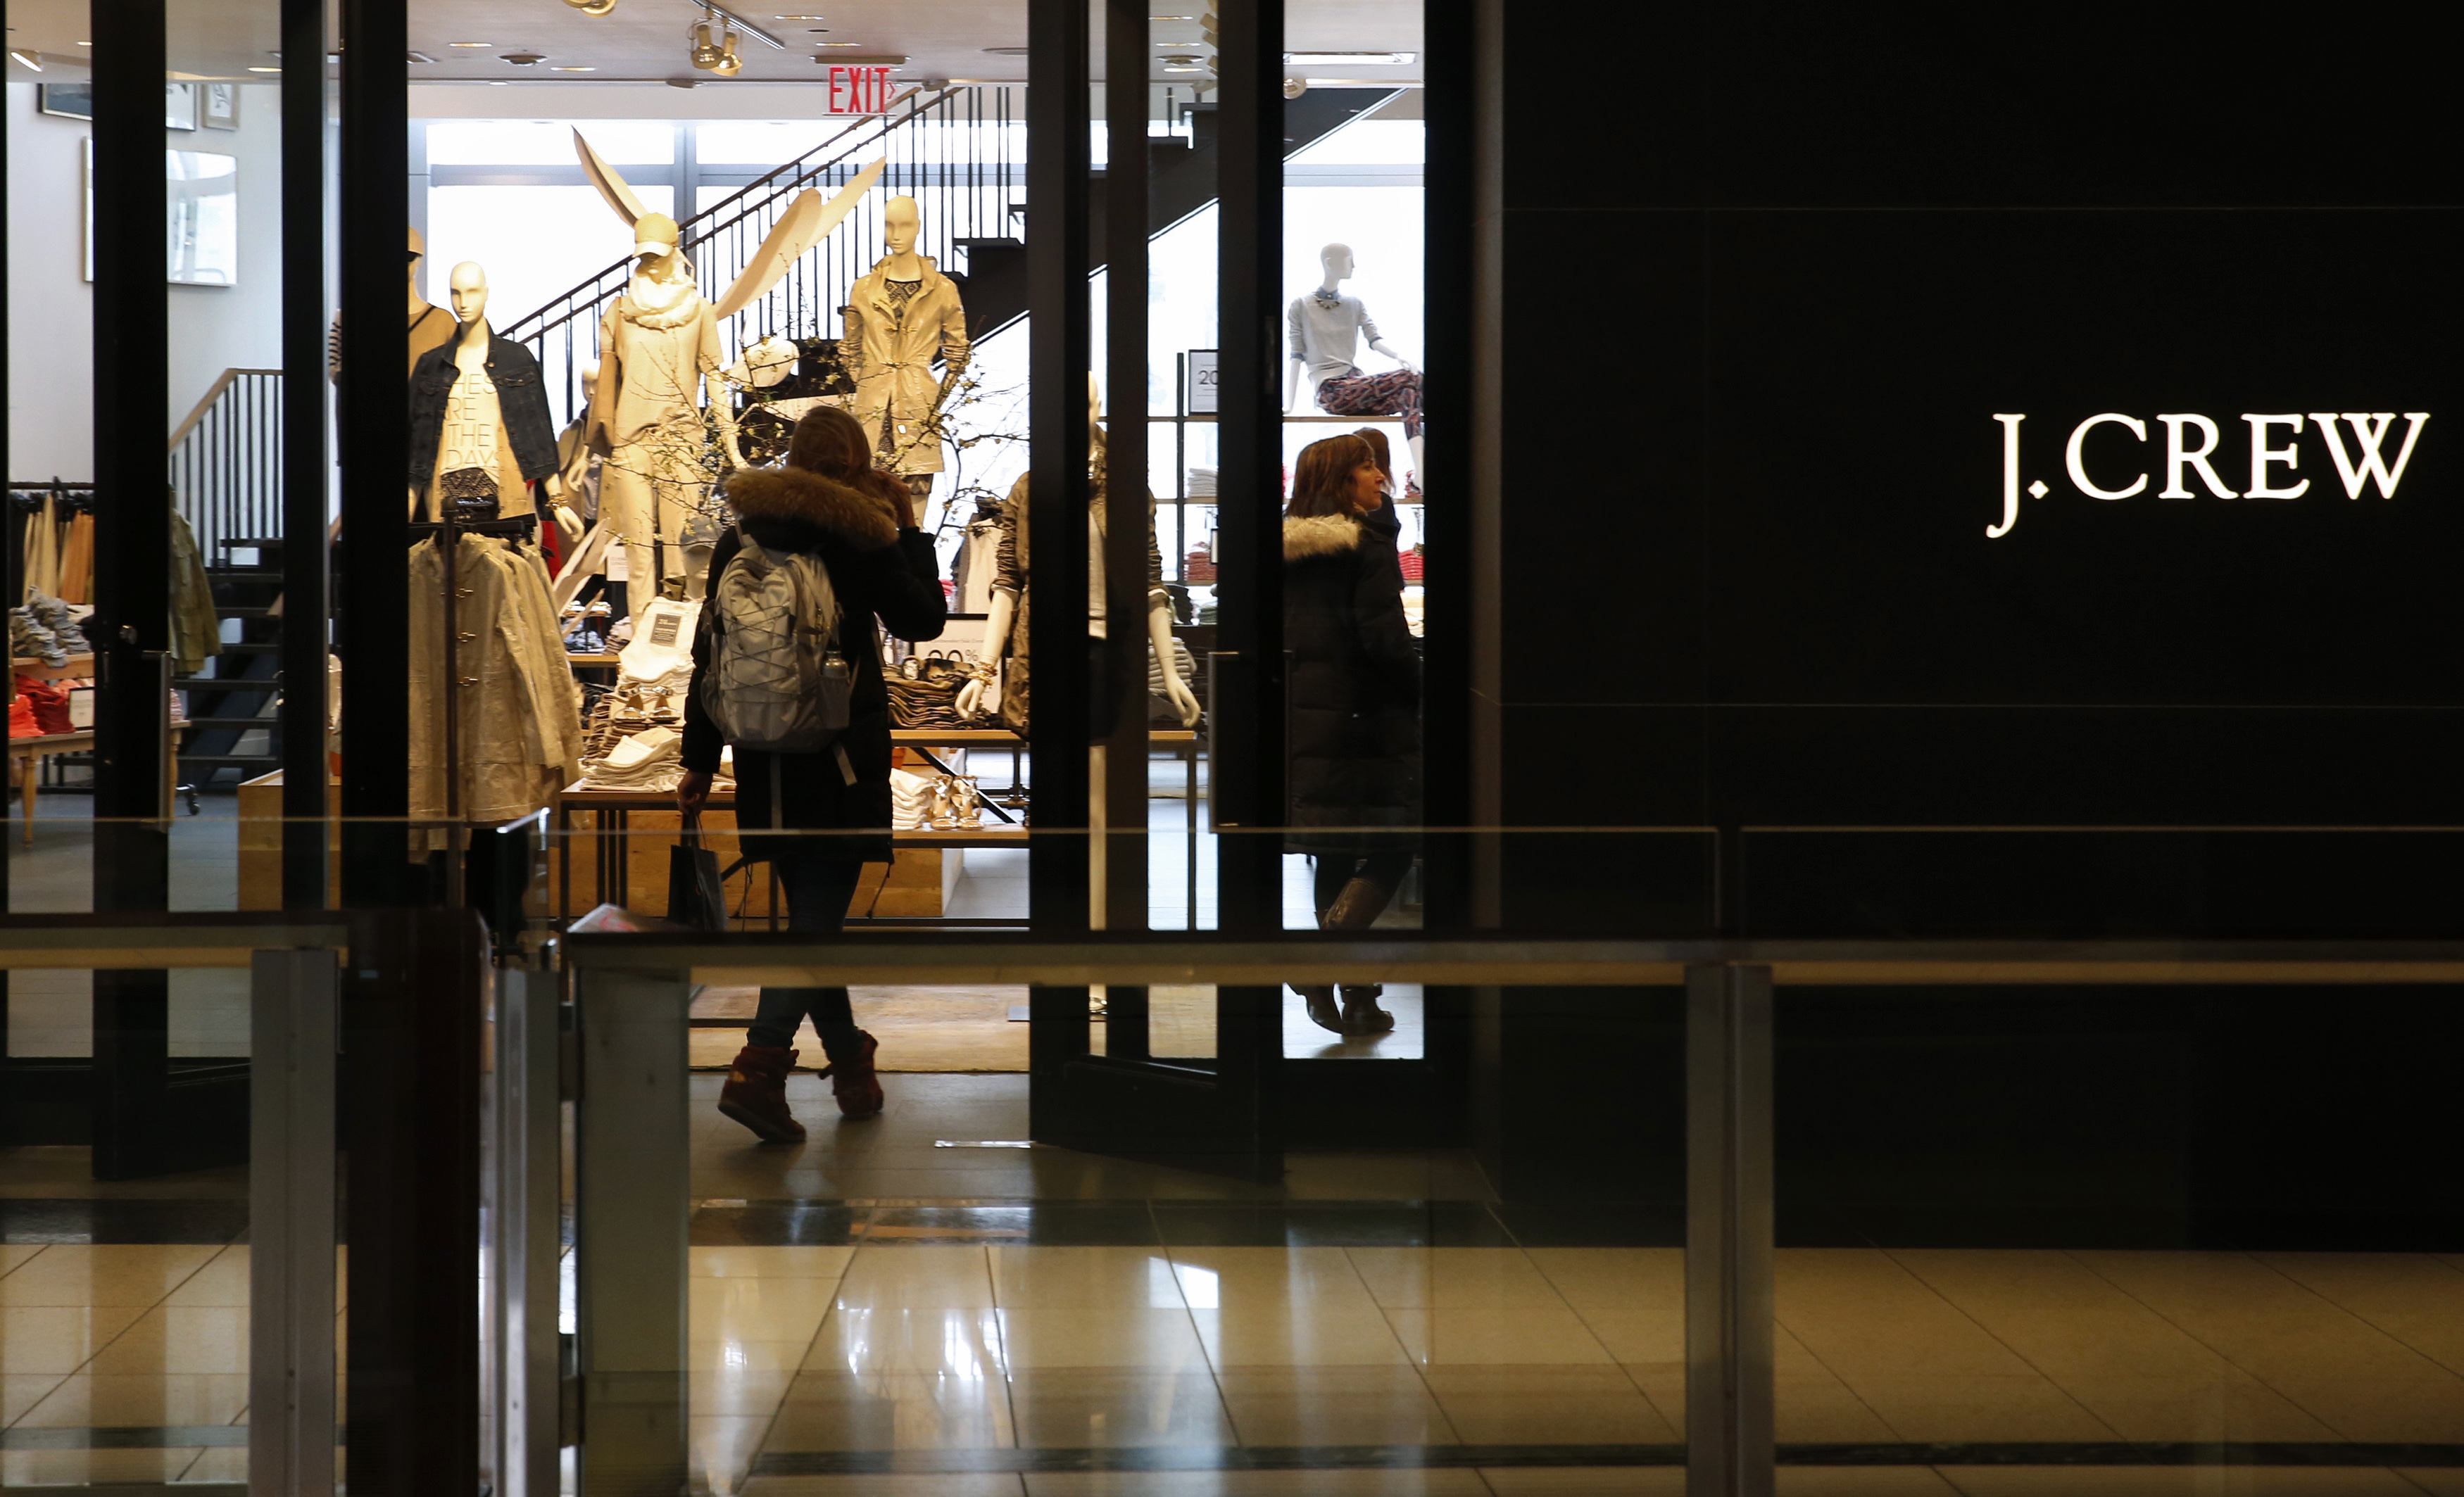 A customer walks into a clothing retailer J.Crew store in Manhattan, New York